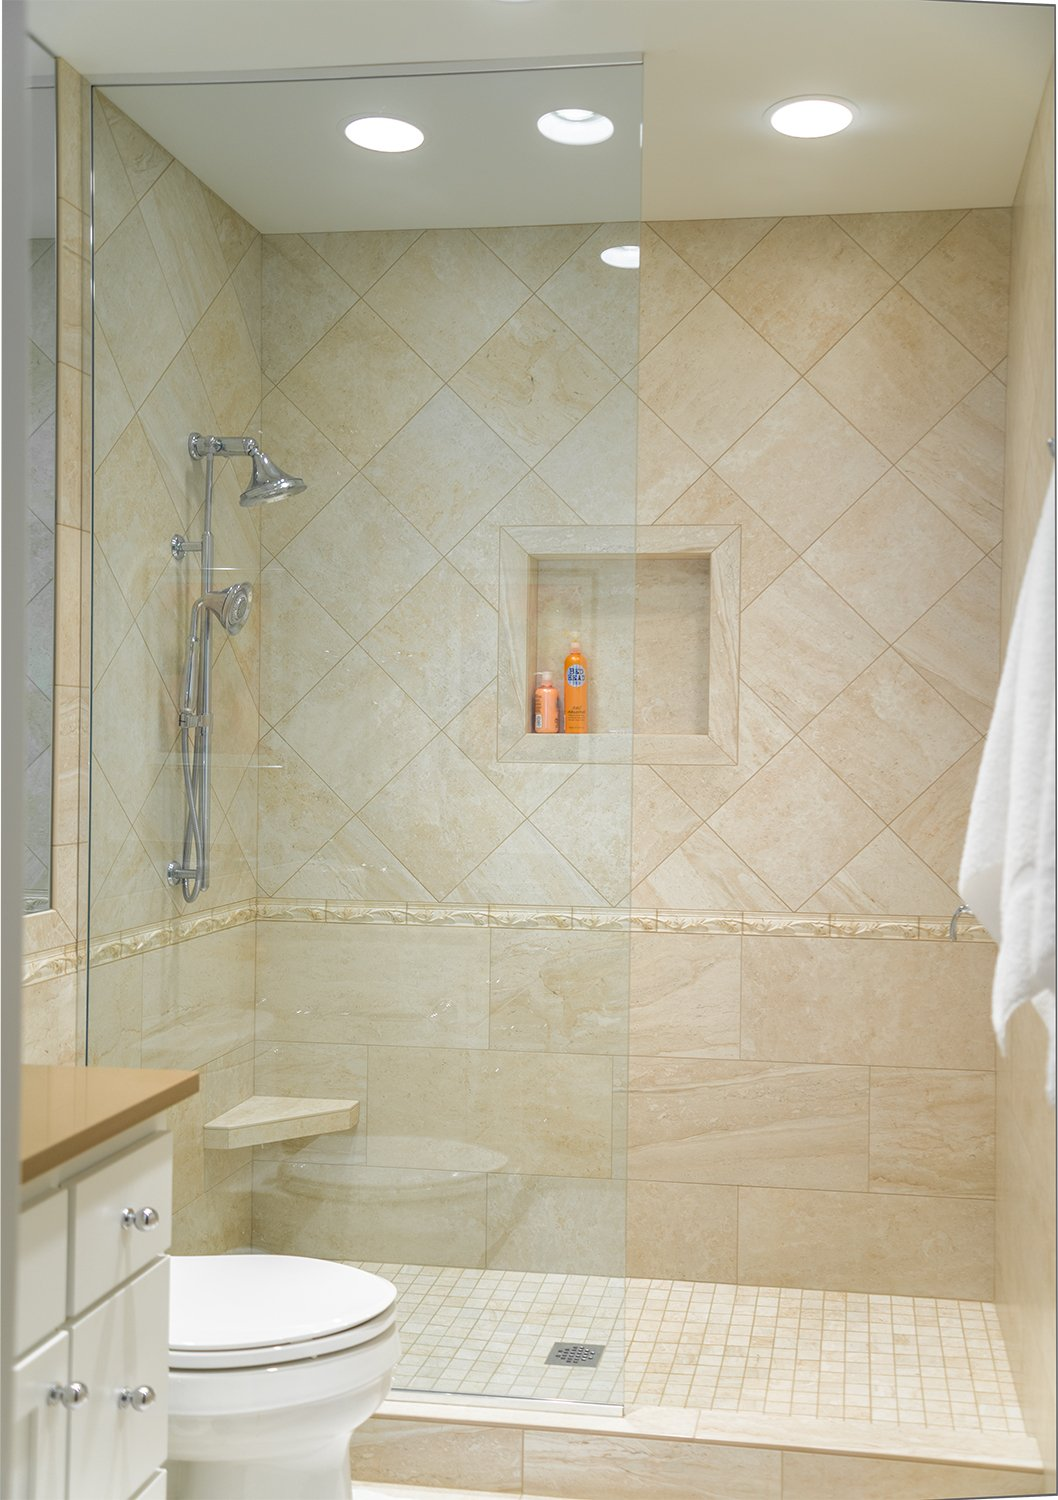 Amazon.com: Shower Niche 12x12 Recessed Tile Ready Bathroom Soap ...